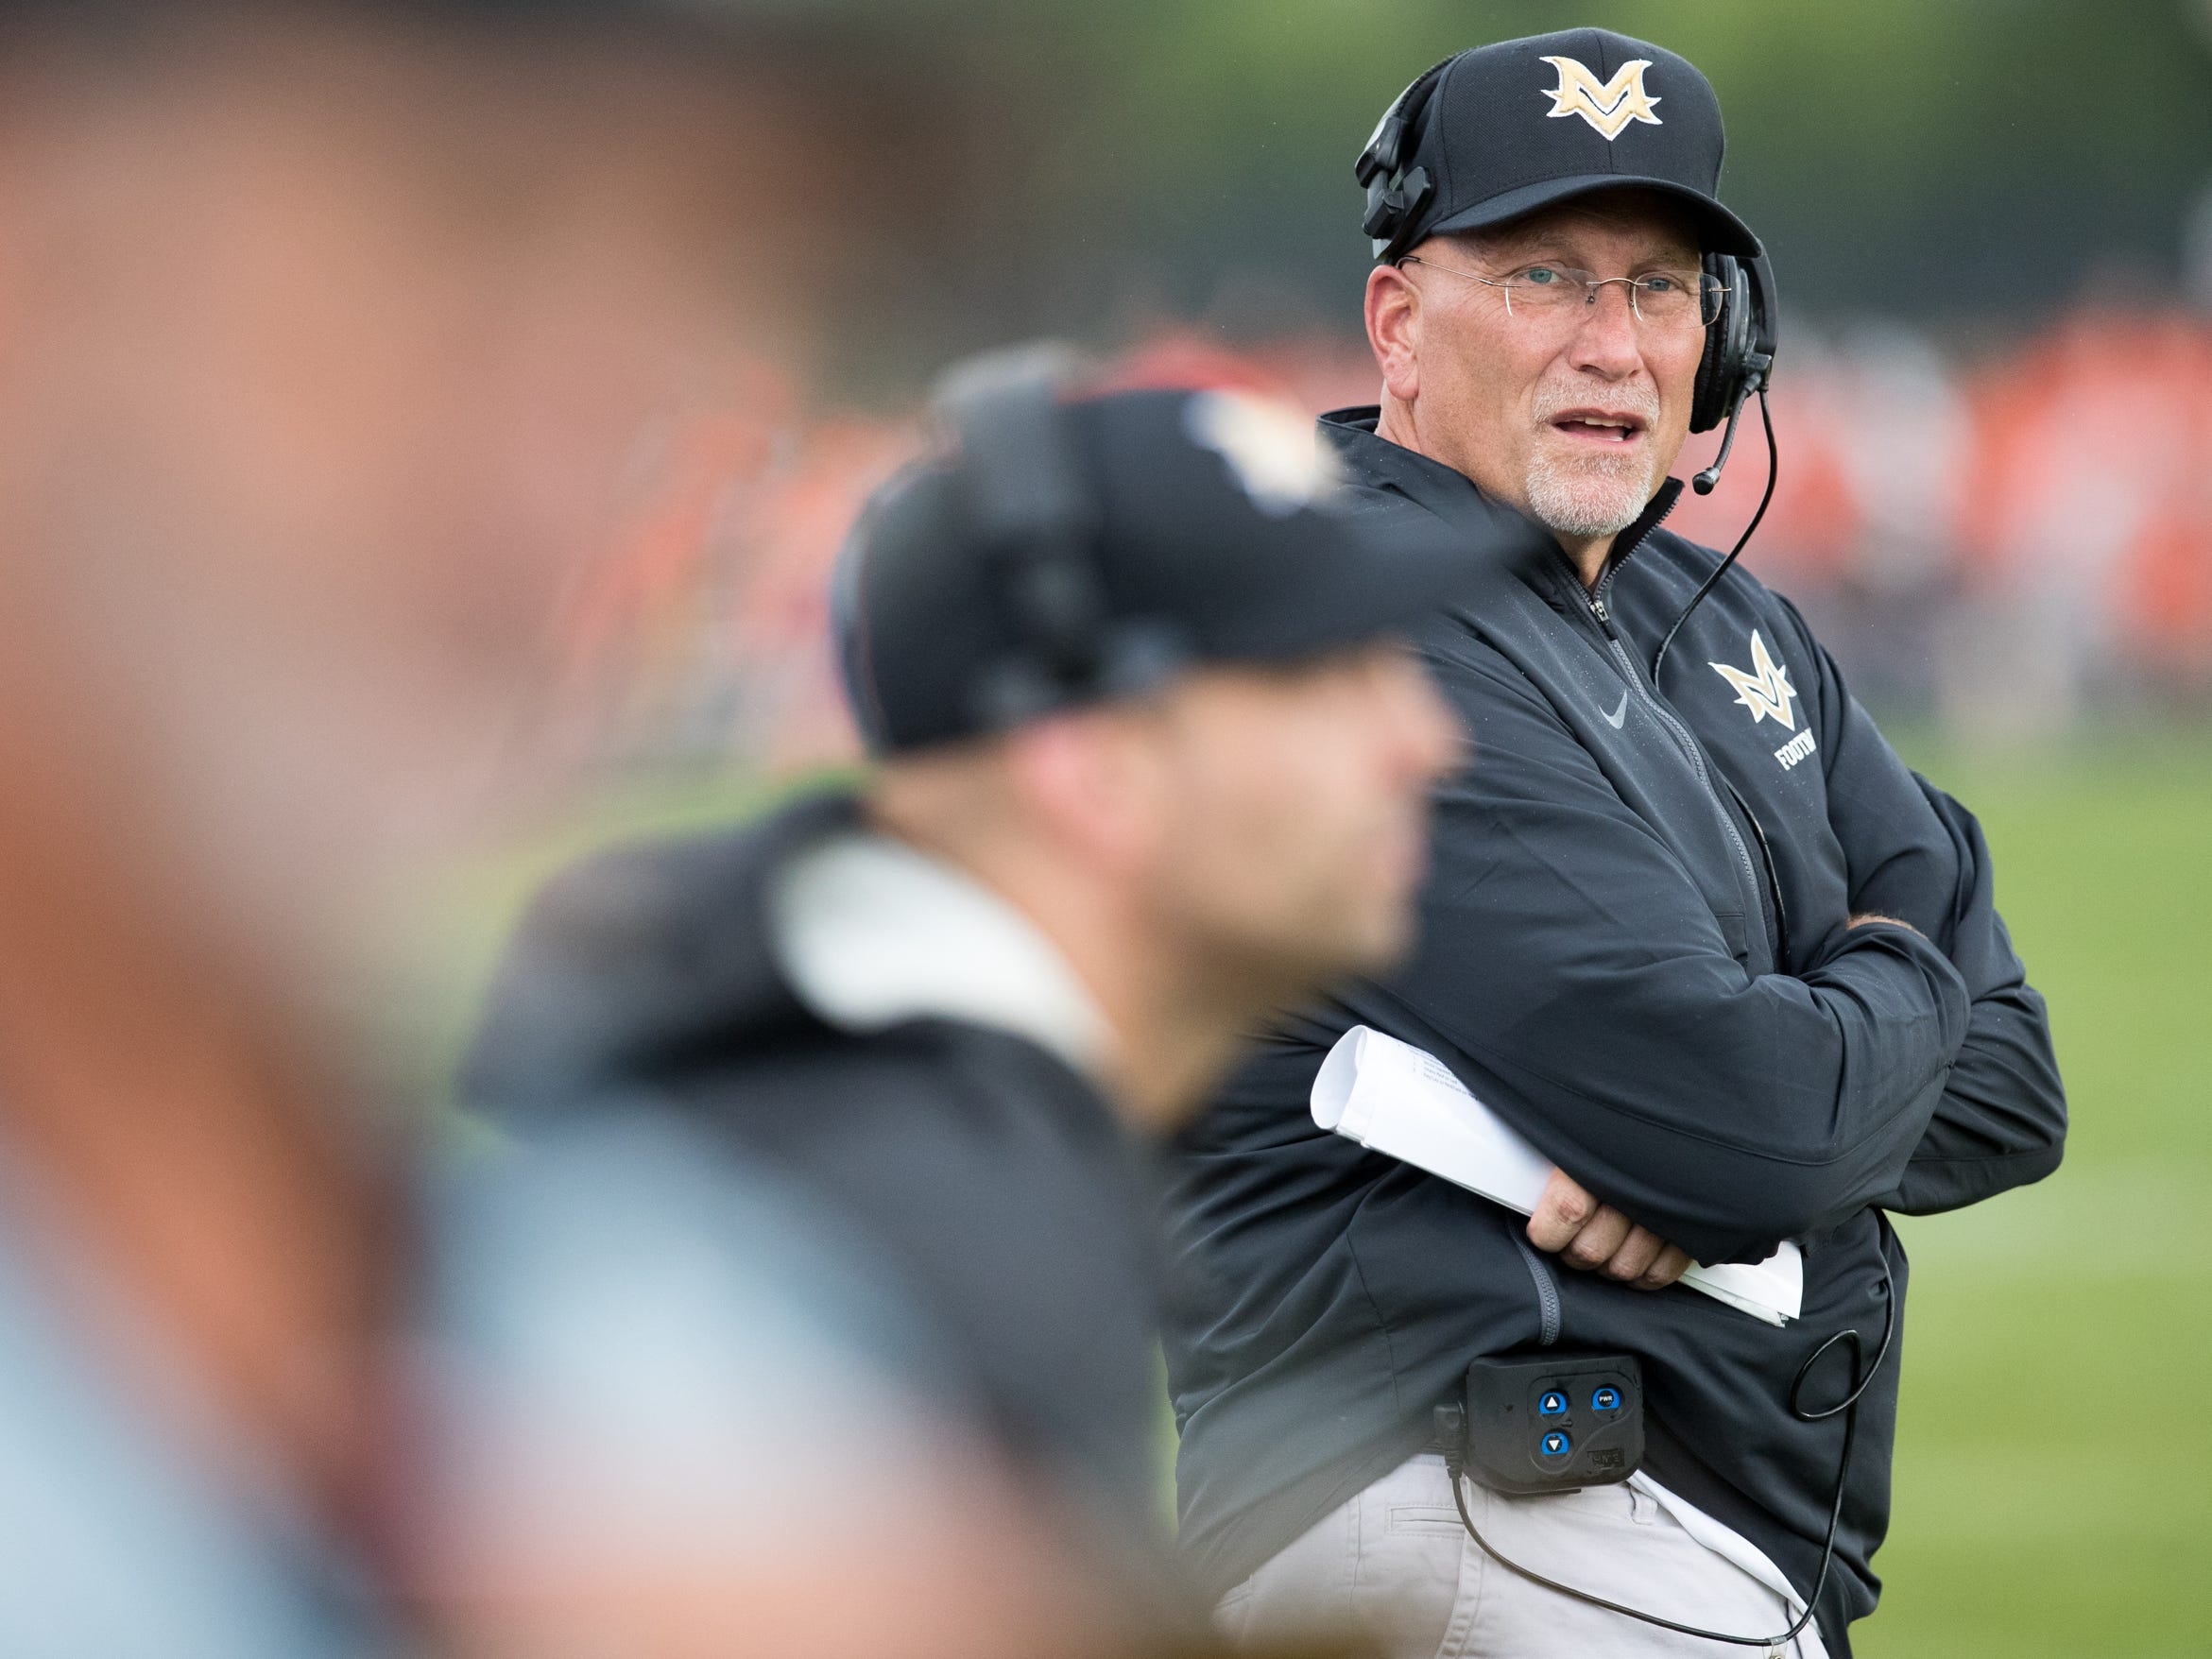 Mike Kirschner, head coach for Mount Vernon High School at Hamilton Heights High School football, won by MVHS, 43-14, Arcadia, Friday, Aug. 17, 2018. This game is the first for HHHS head coach Jon Kirschner, who faced his father Mike Kirschner, a veteran and champion coach in his first season at MVHS.